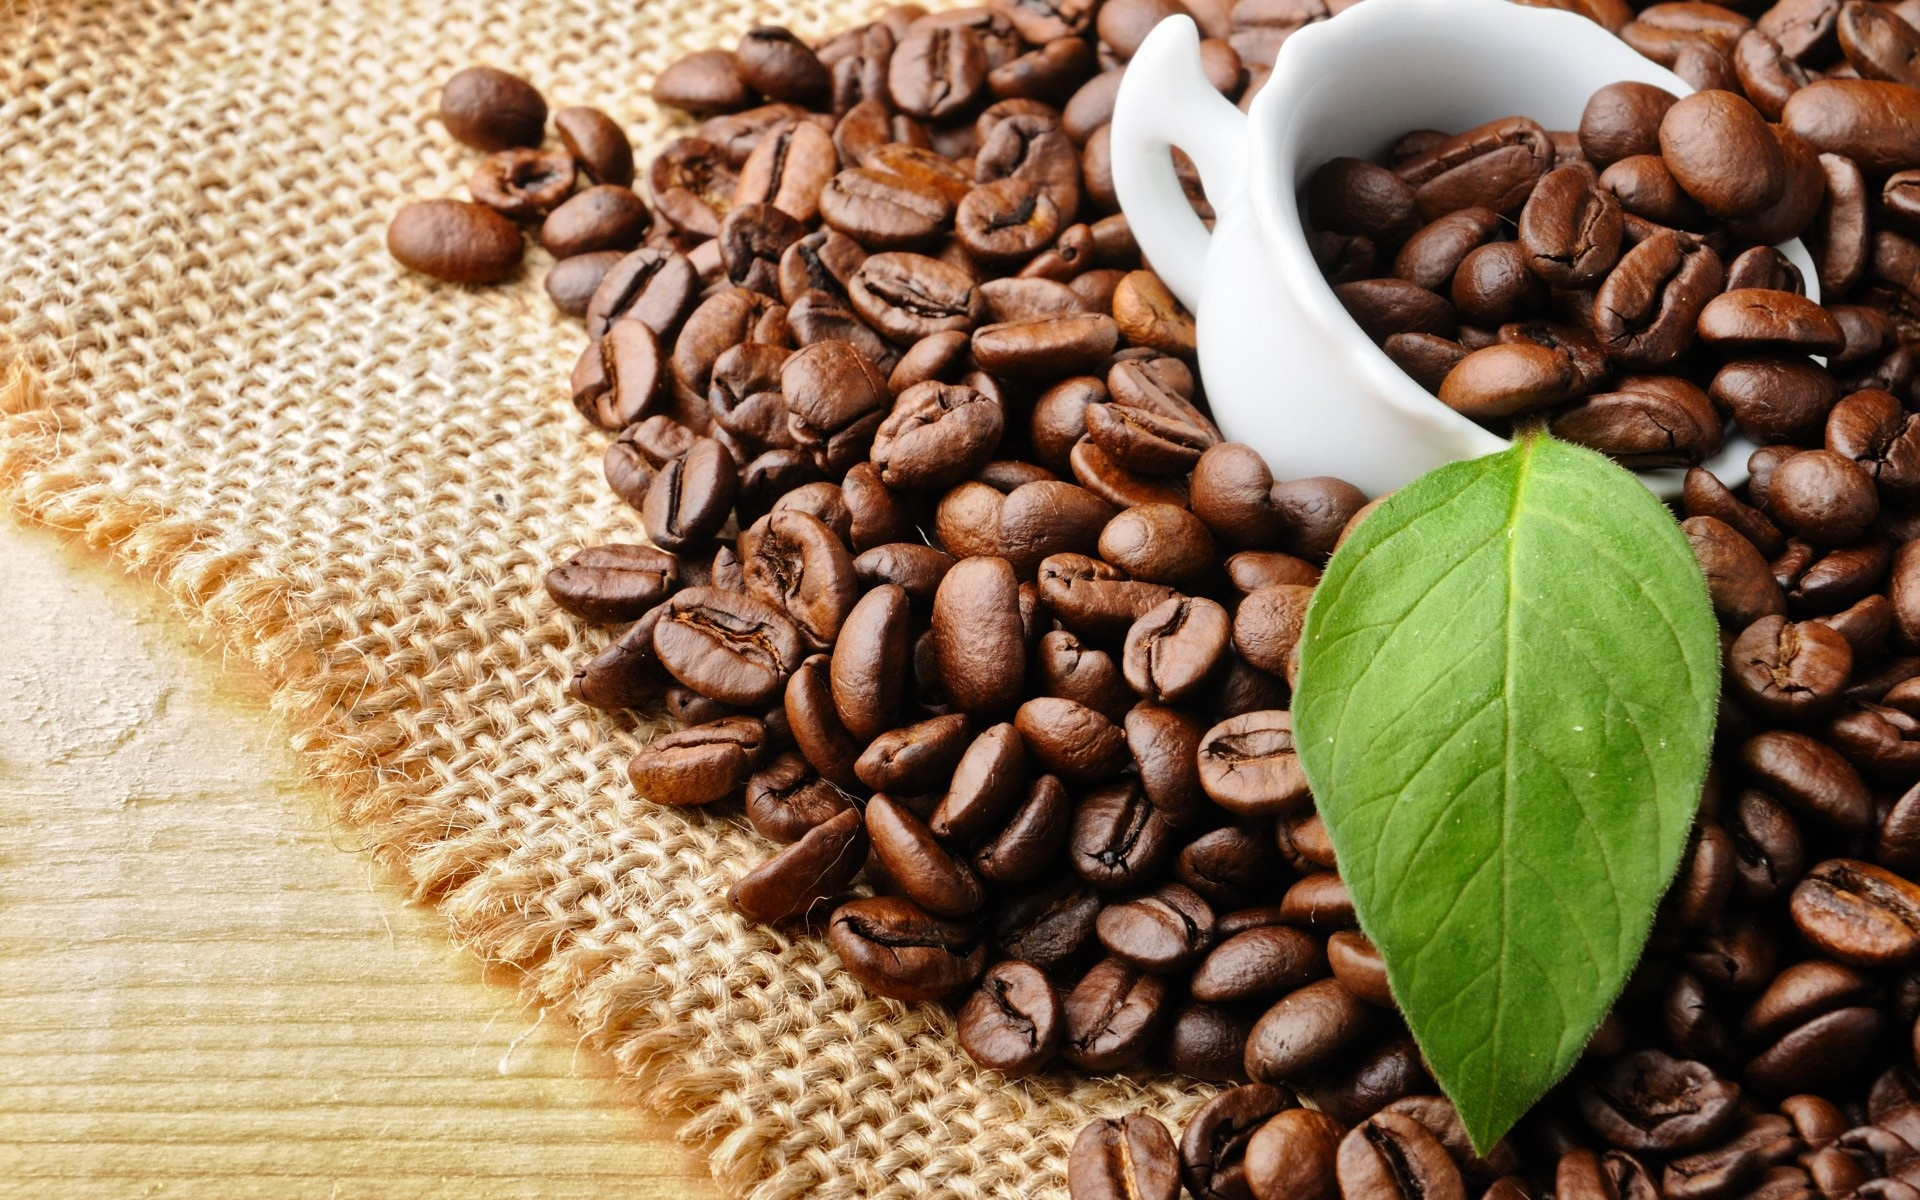 Ukraine Based Business Looking To Import Coffee Beans